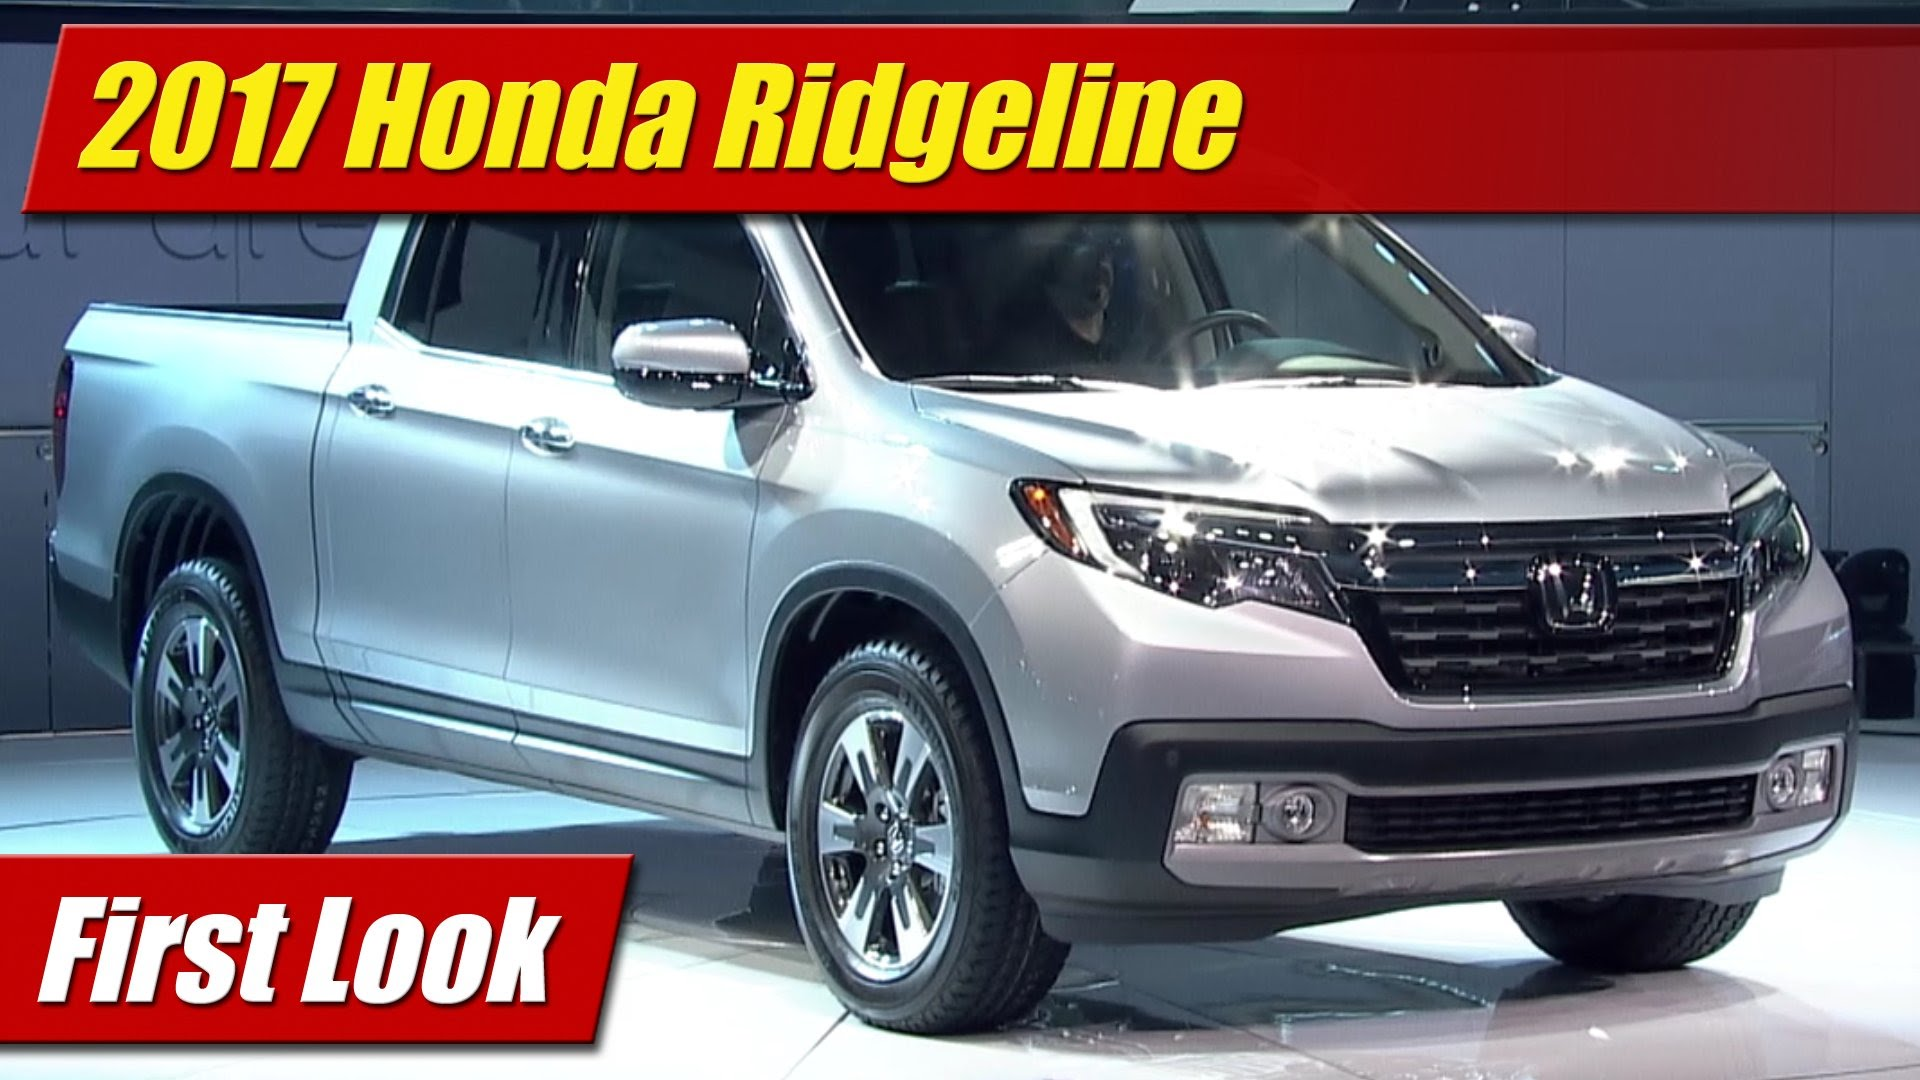 First Look: 2017 Honda Ridgeline - TestDriven.TV